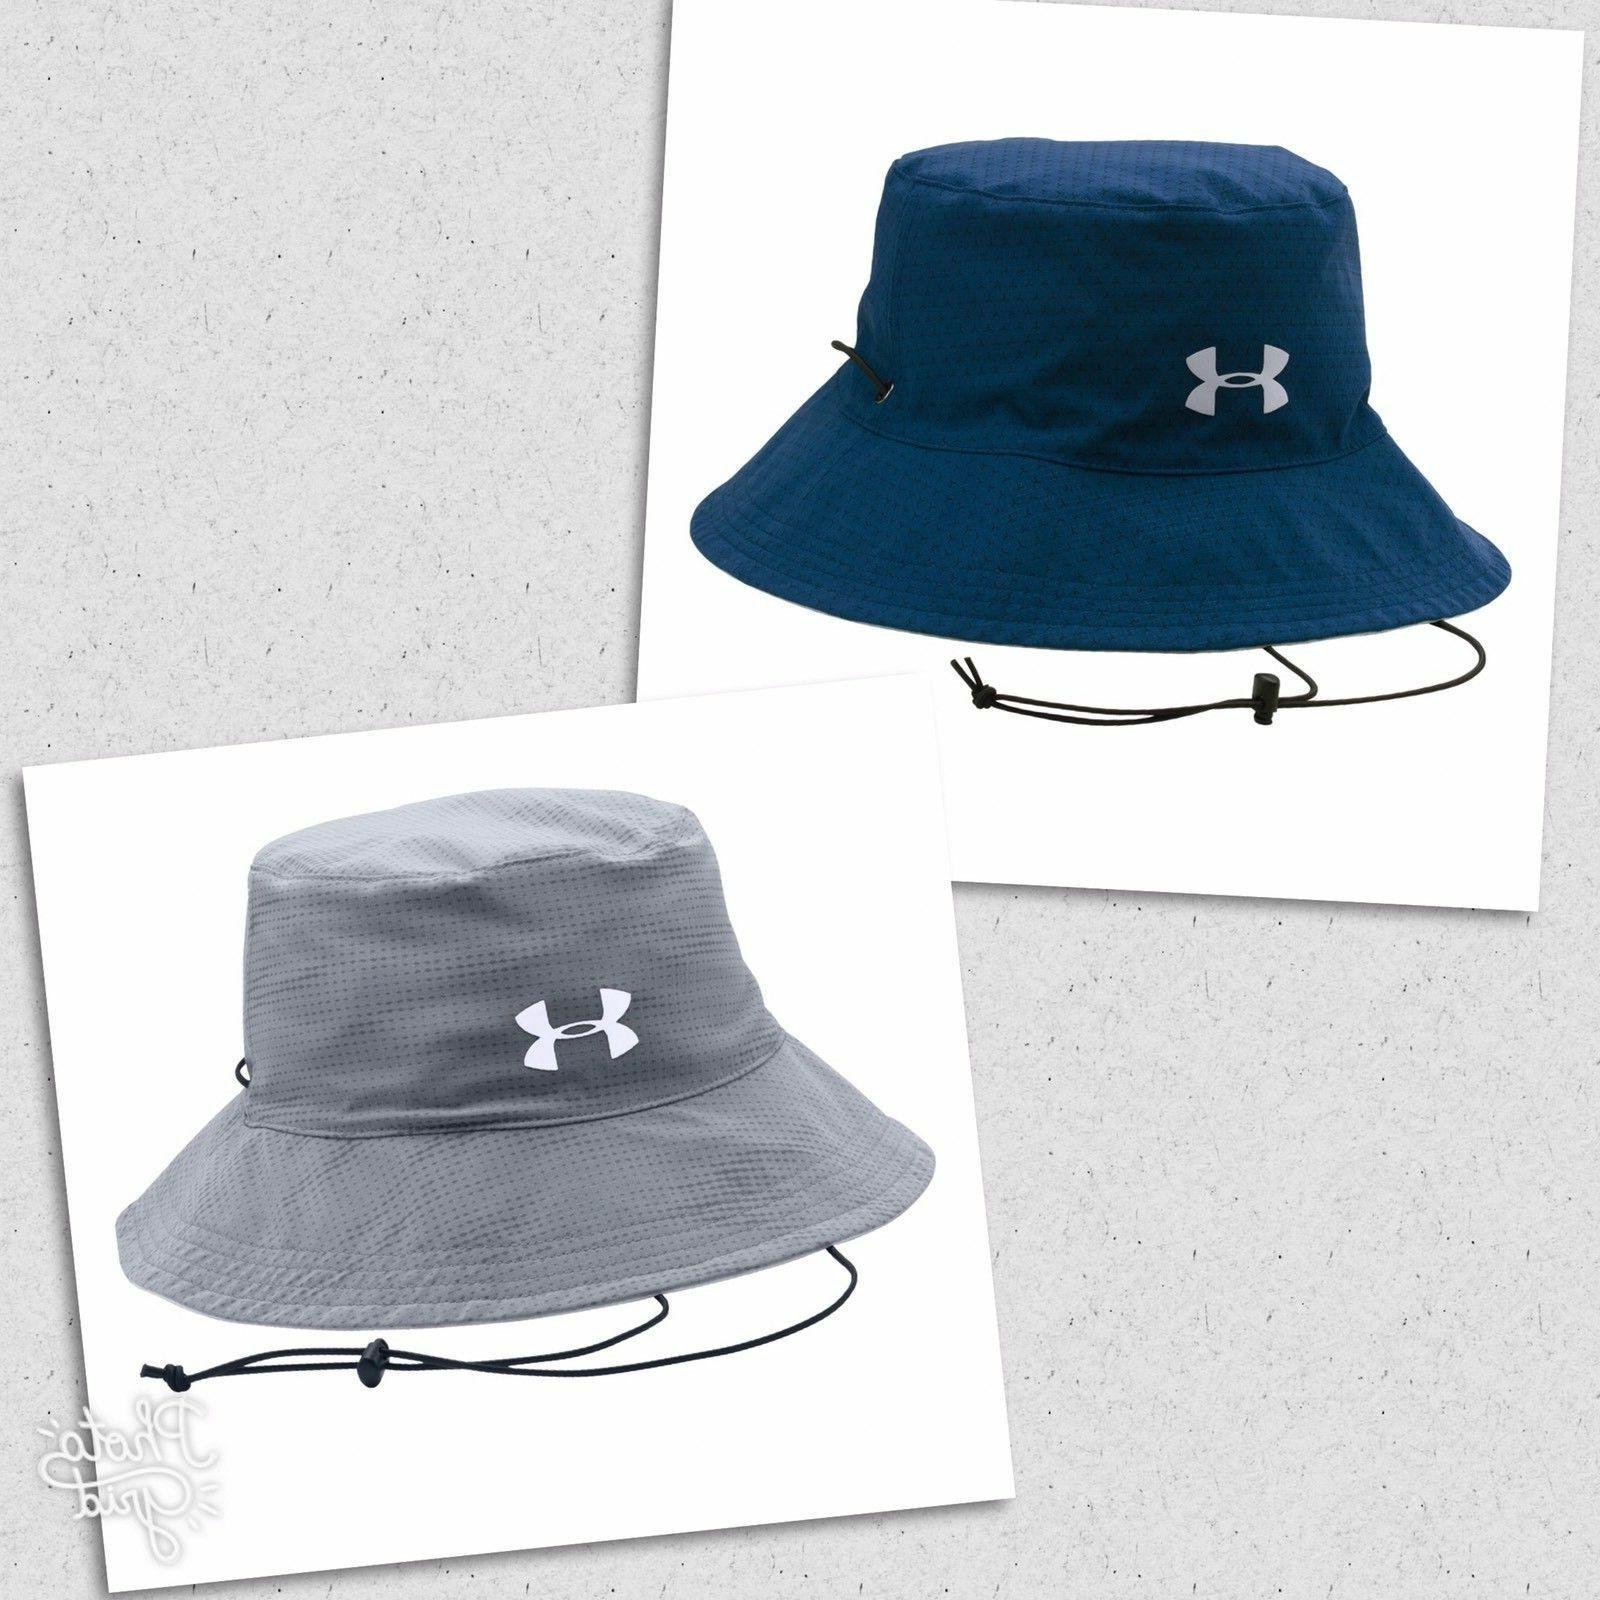 a69e64f82e1 One NWT Under Armour Men s Switchback Reversible Bucket Fish